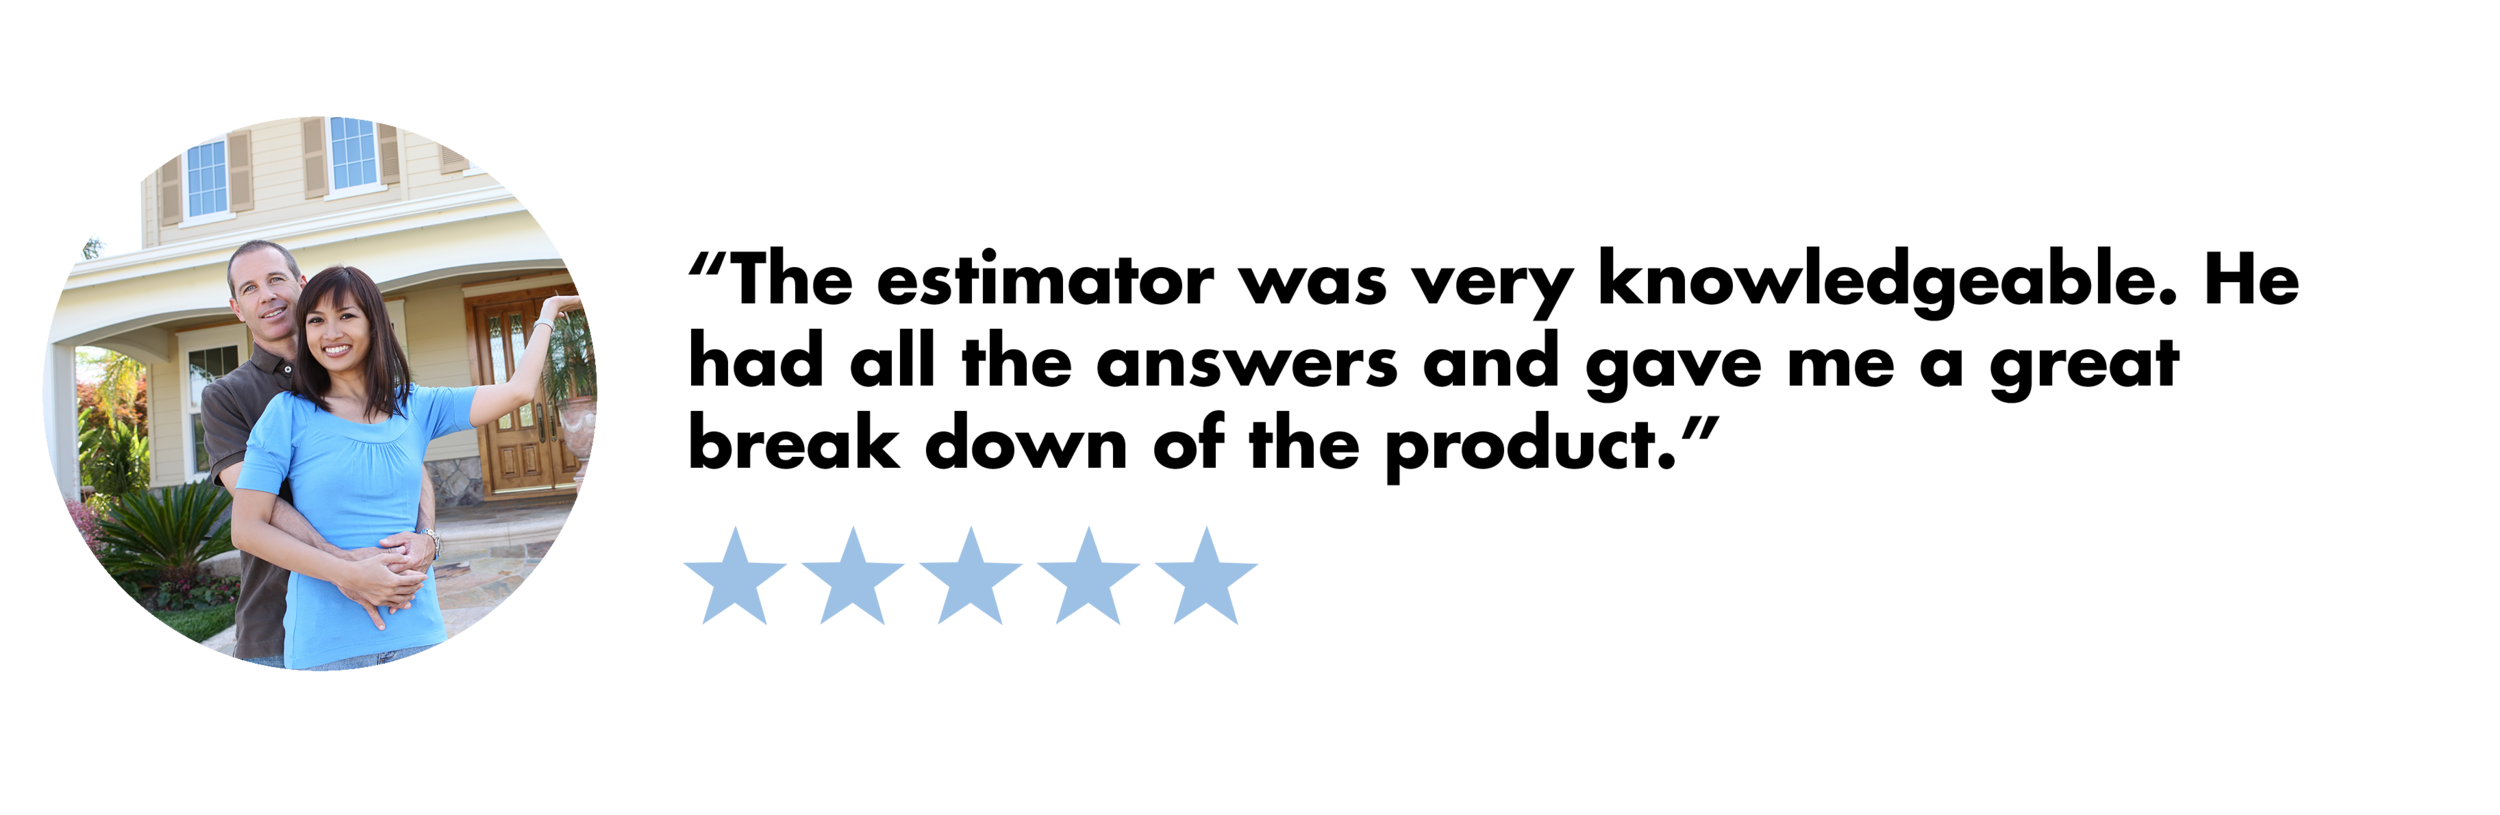 Review6.png